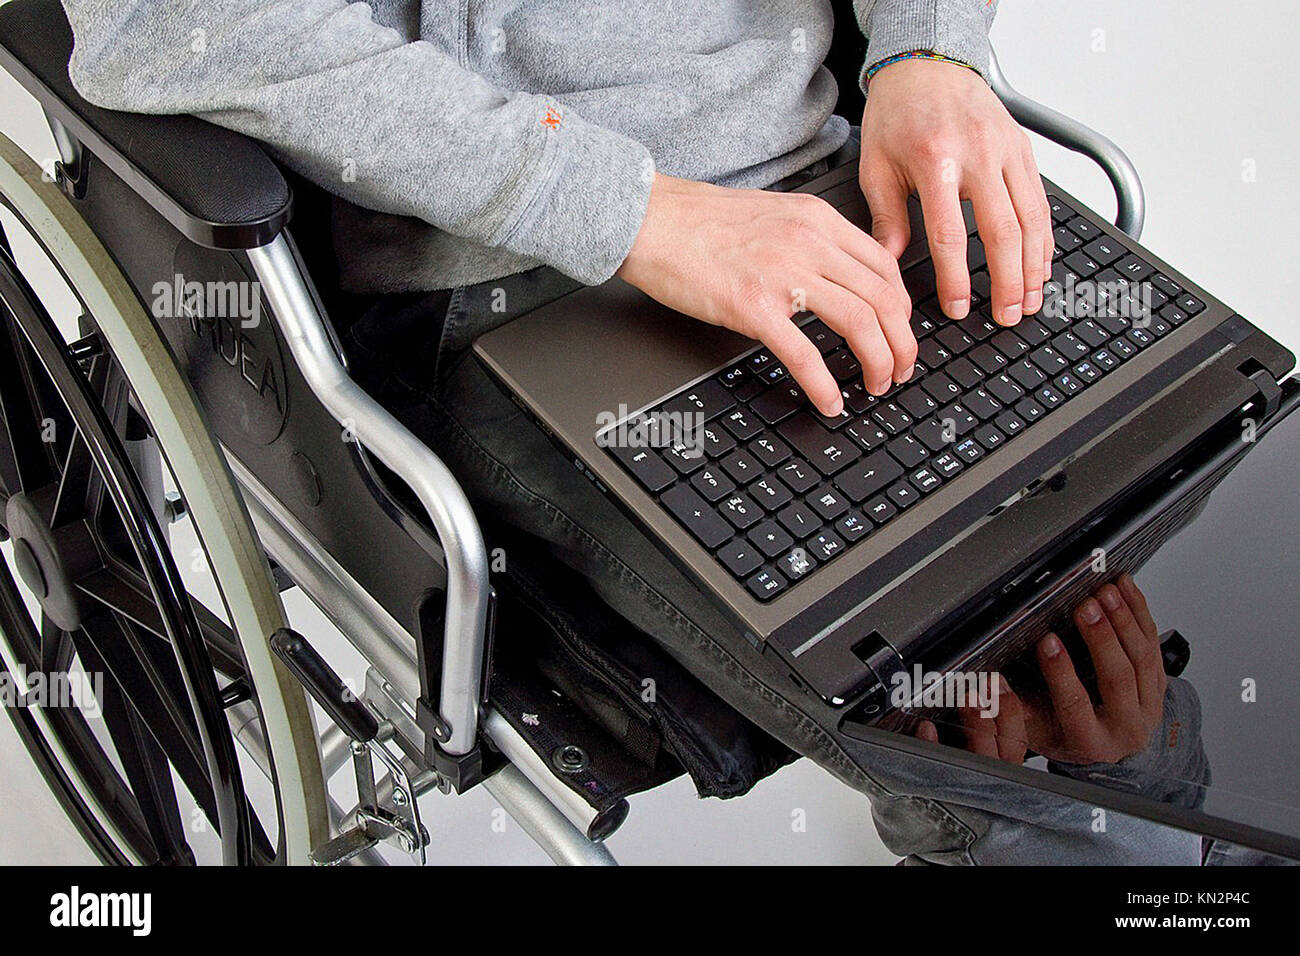 Disabled with computer - Stock Image